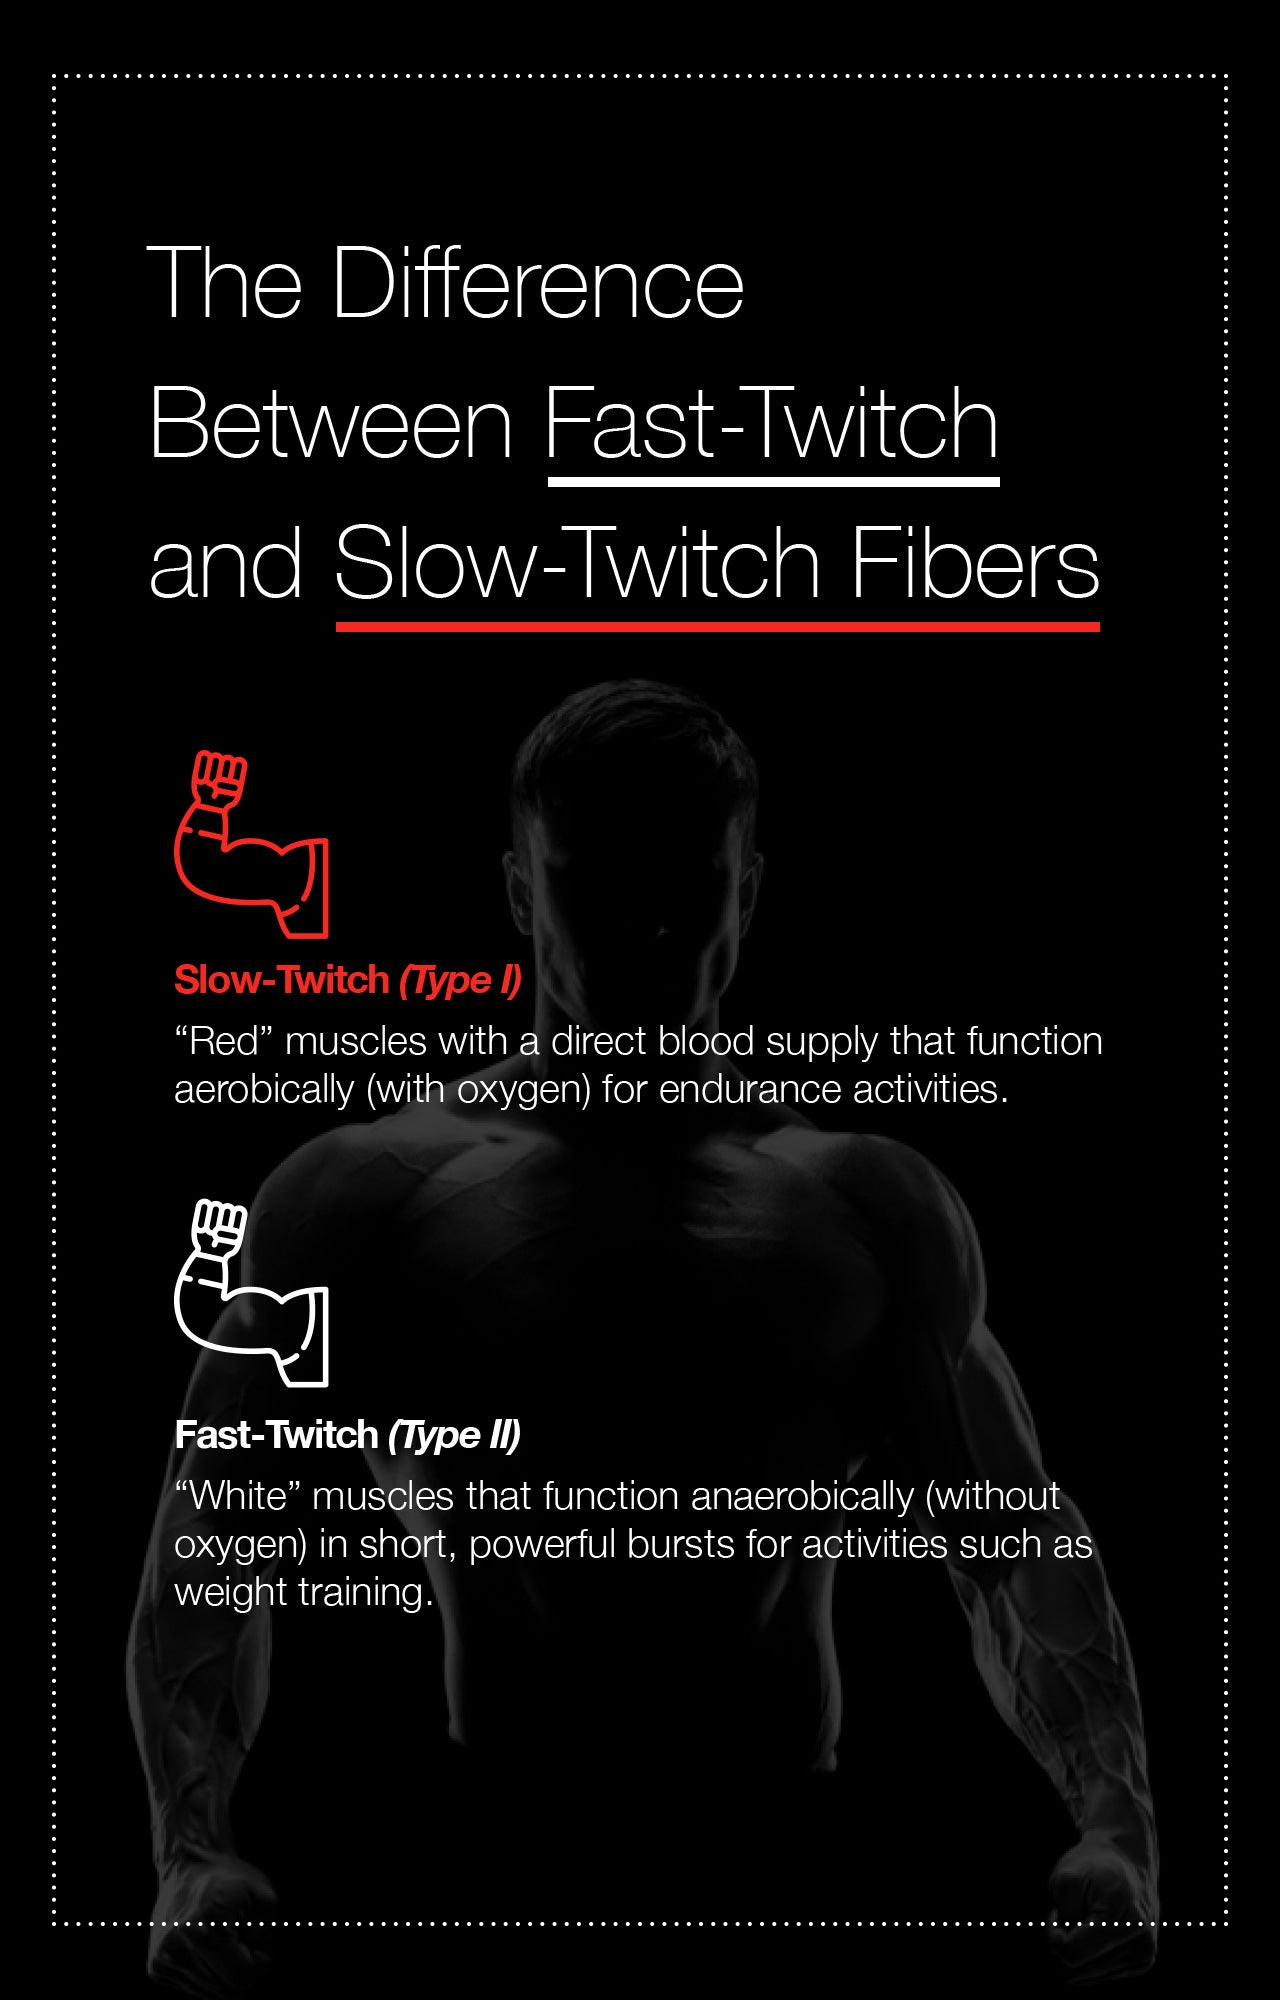 The Difference Between Fast-Twitch and Slow-Twitch Fibers